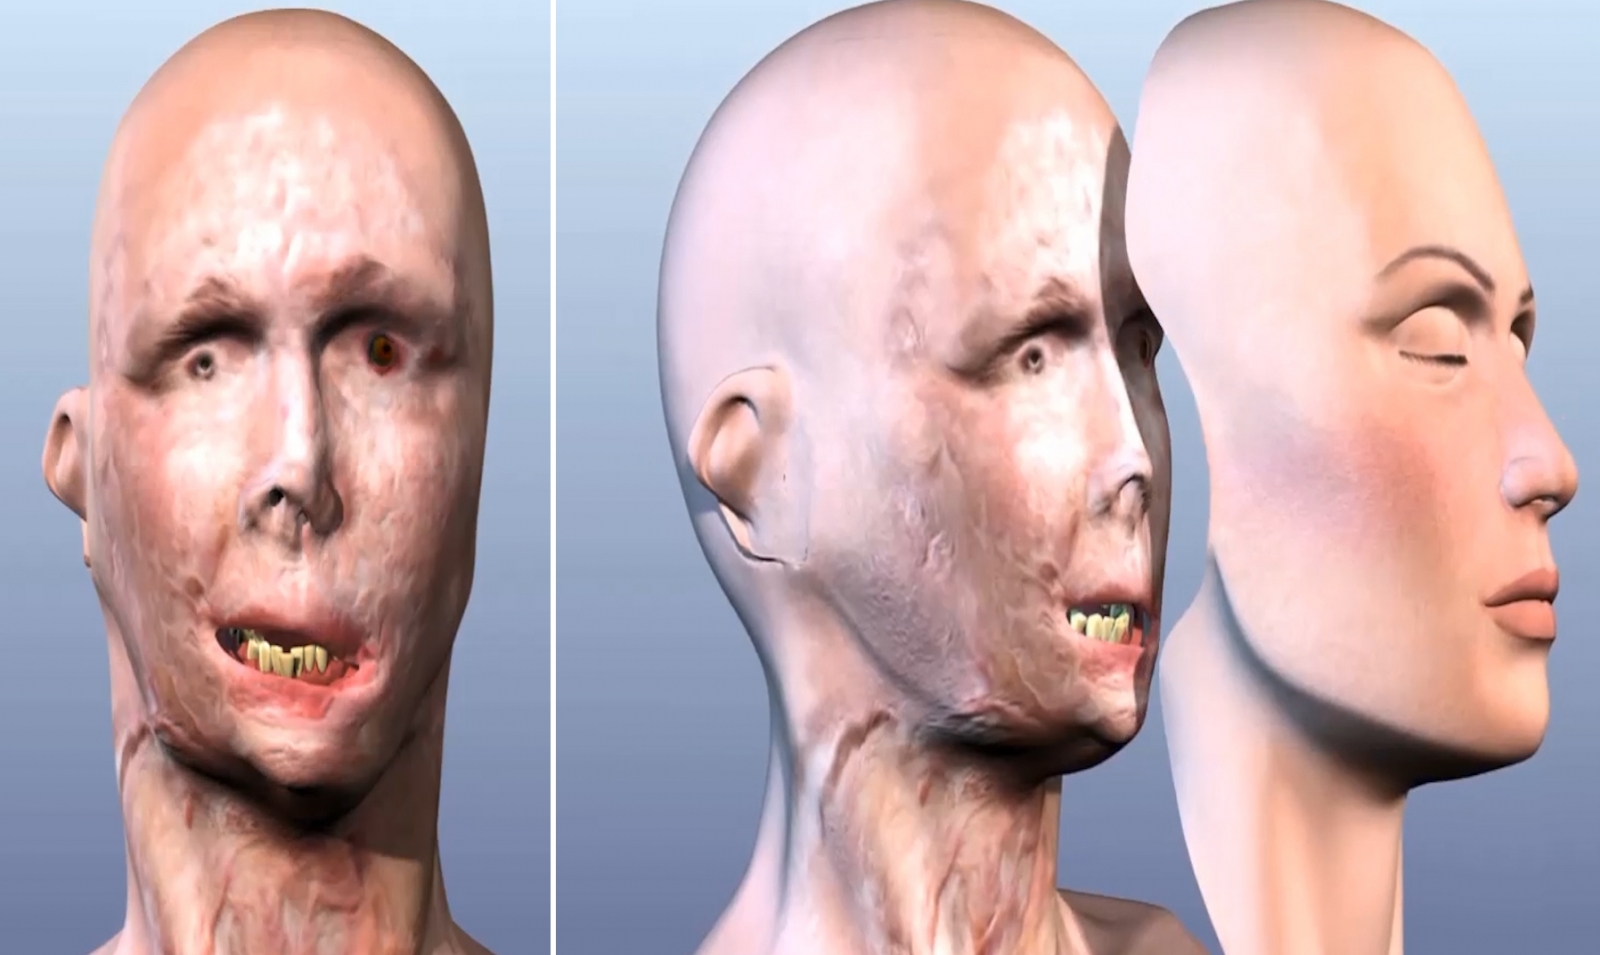 Full facial transplants: A new medical technique where a donor's face can be used to rebuild the faces of patients with horrific facial injuries